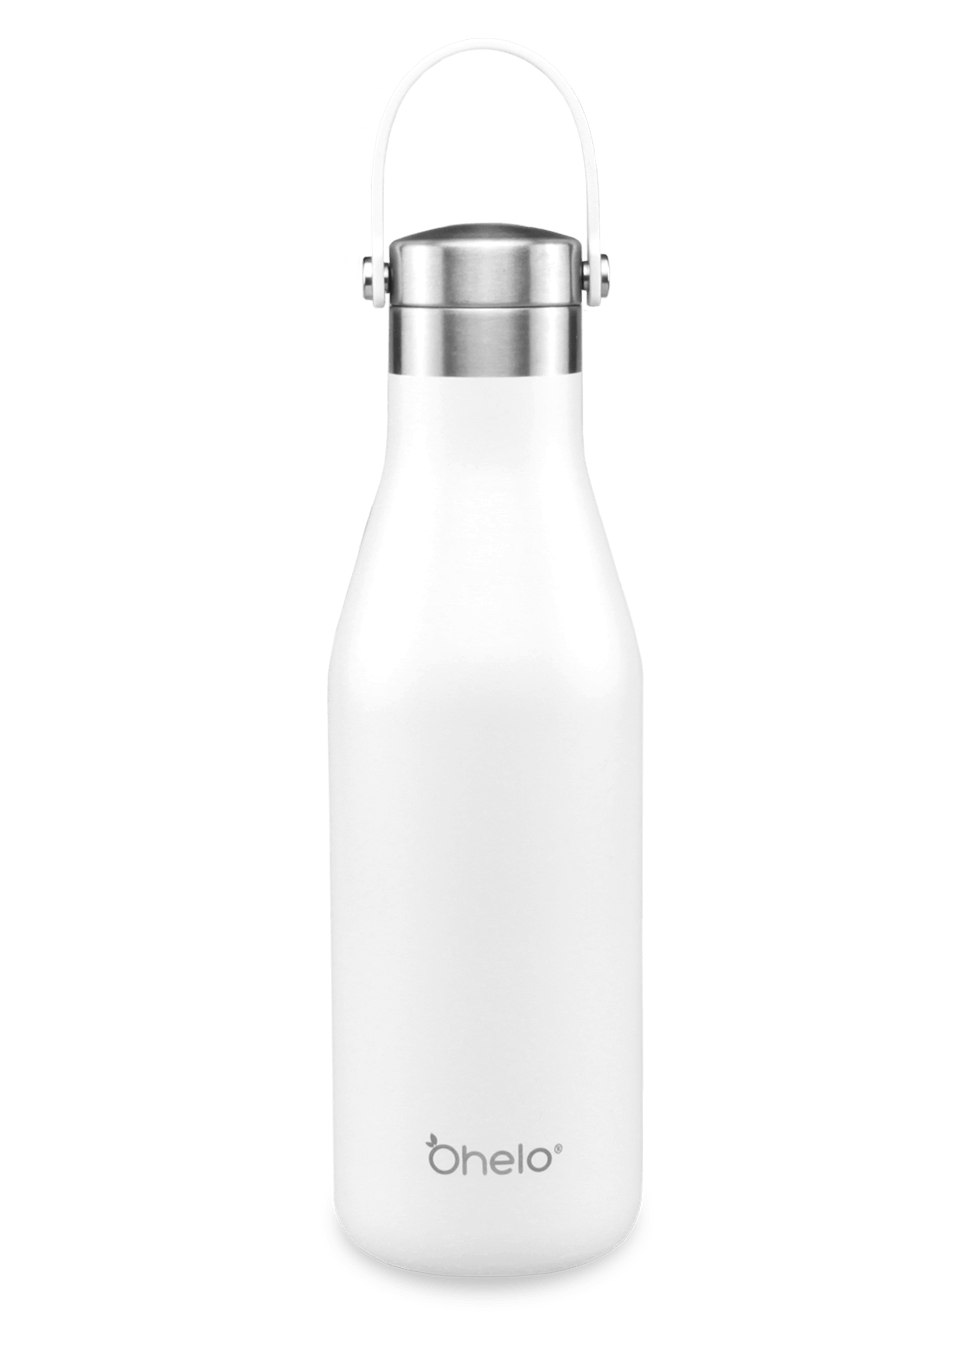 Ohelo reusable stainless steel water bottle white